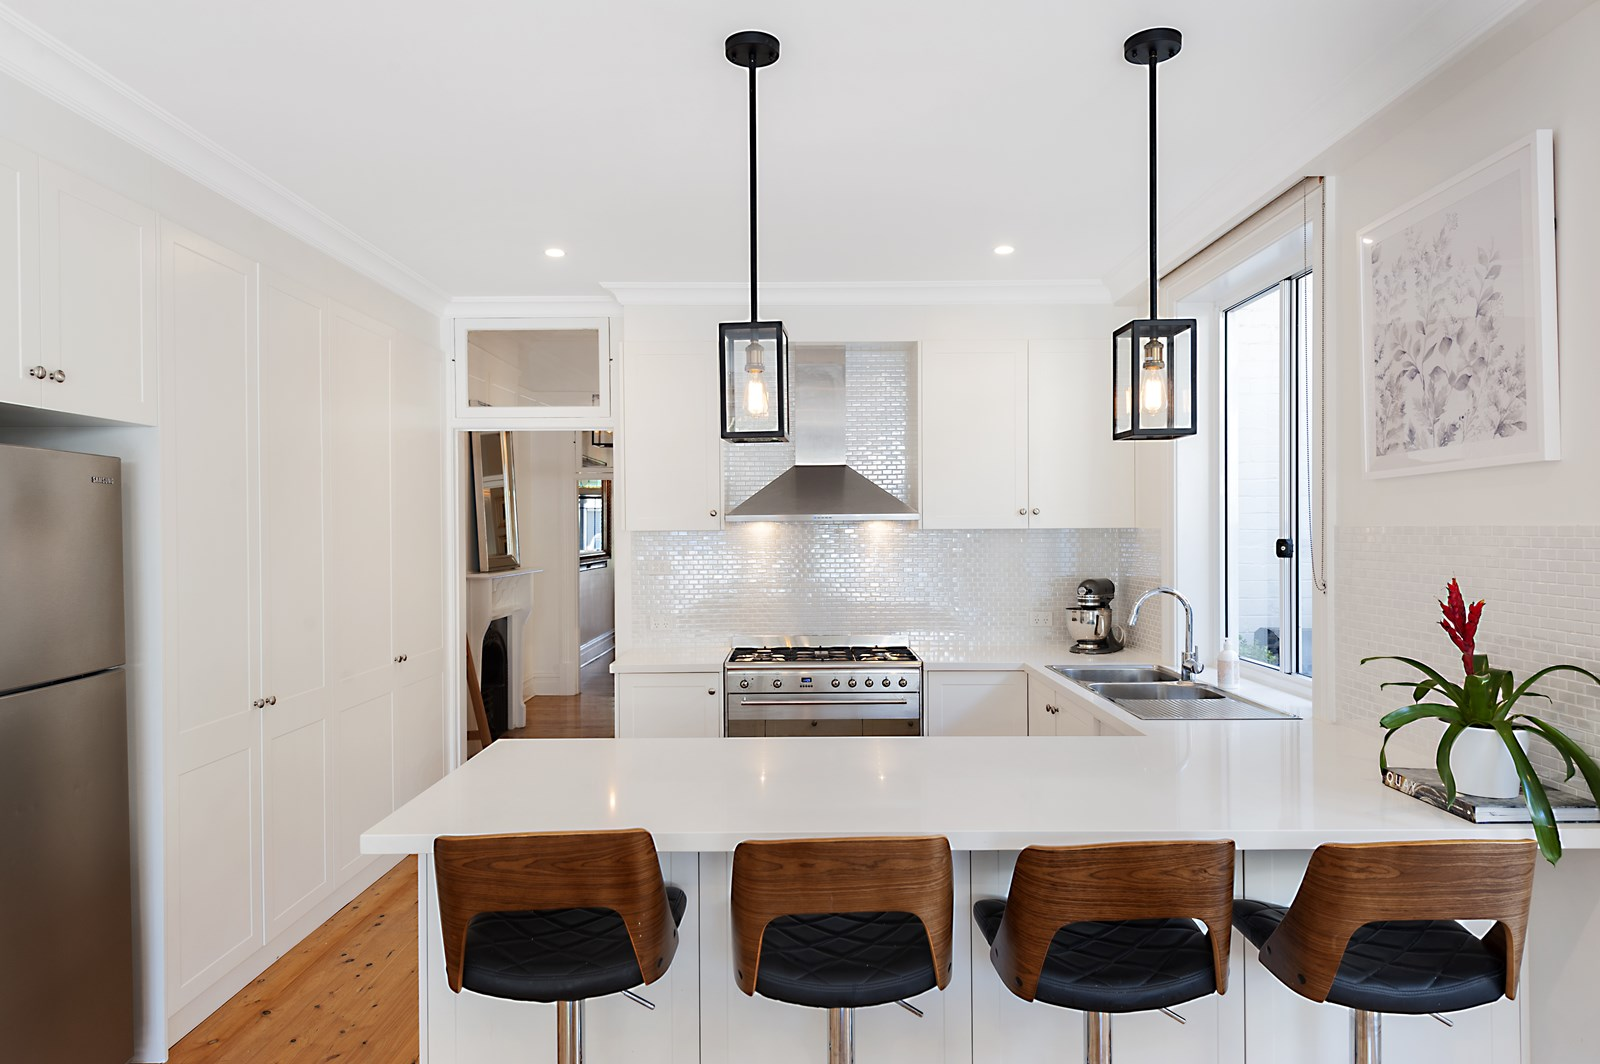 Kitchens Drummoyne Get Your Instant Home Renovation Quote In Drummoyne